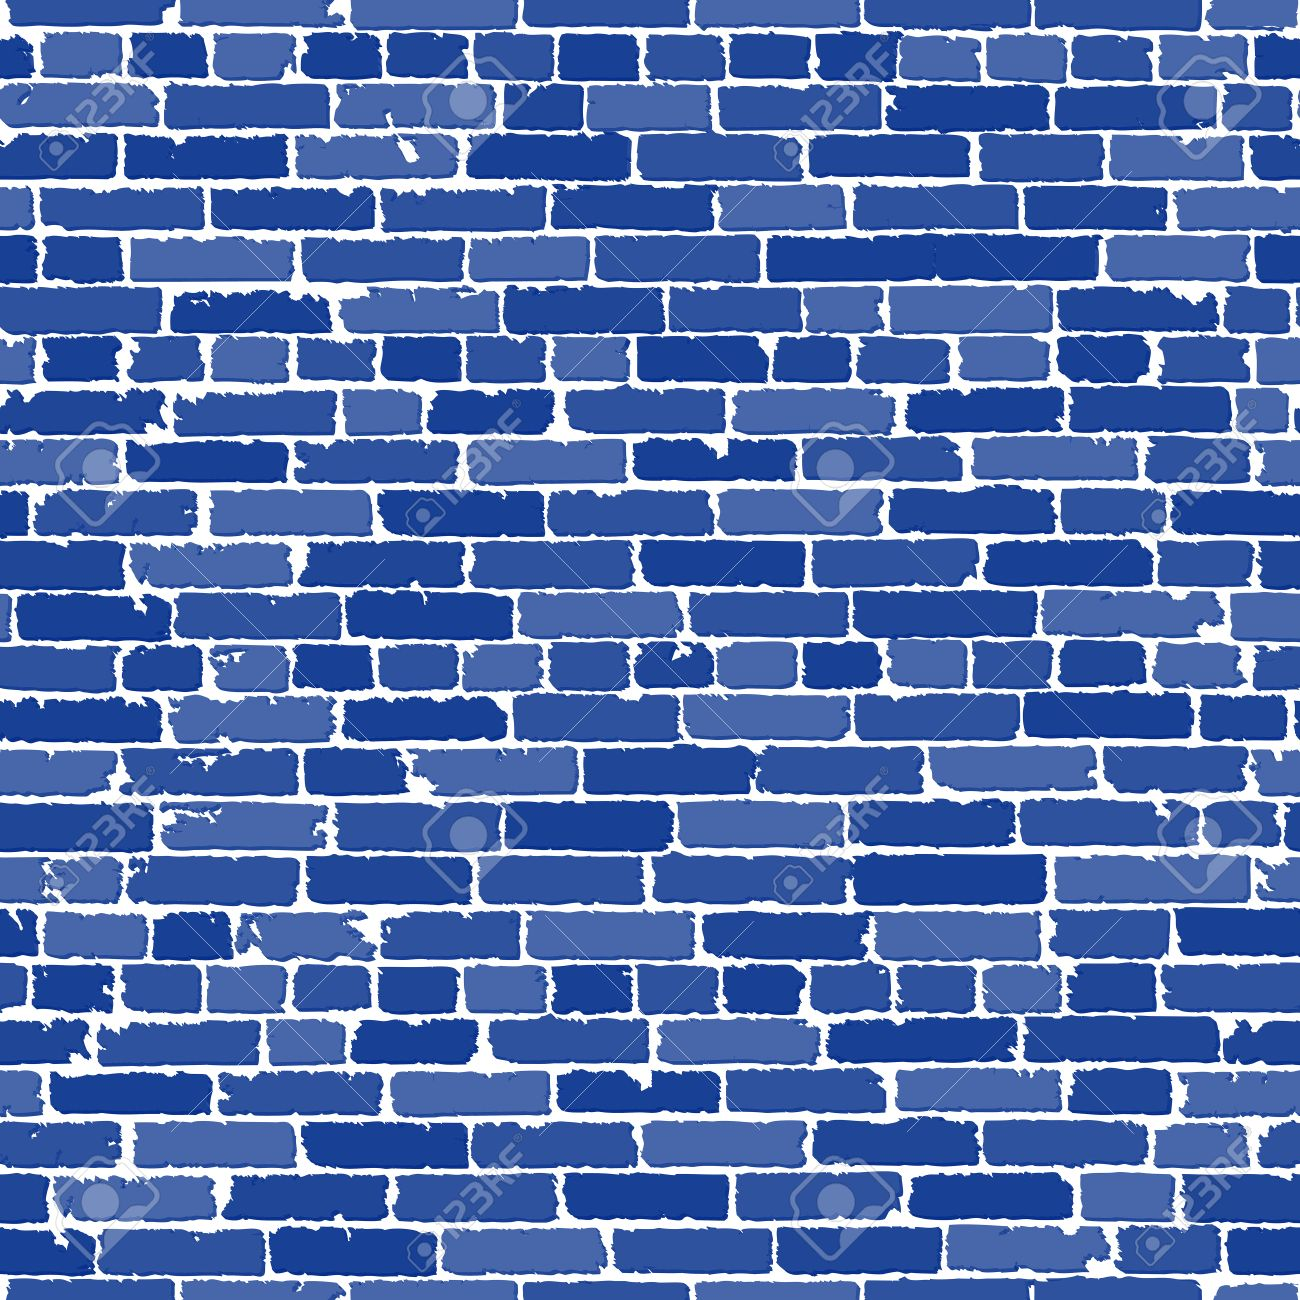 Vector seamless texture of blue realistic old brick wall with shadows. Vector illustration - 54974995